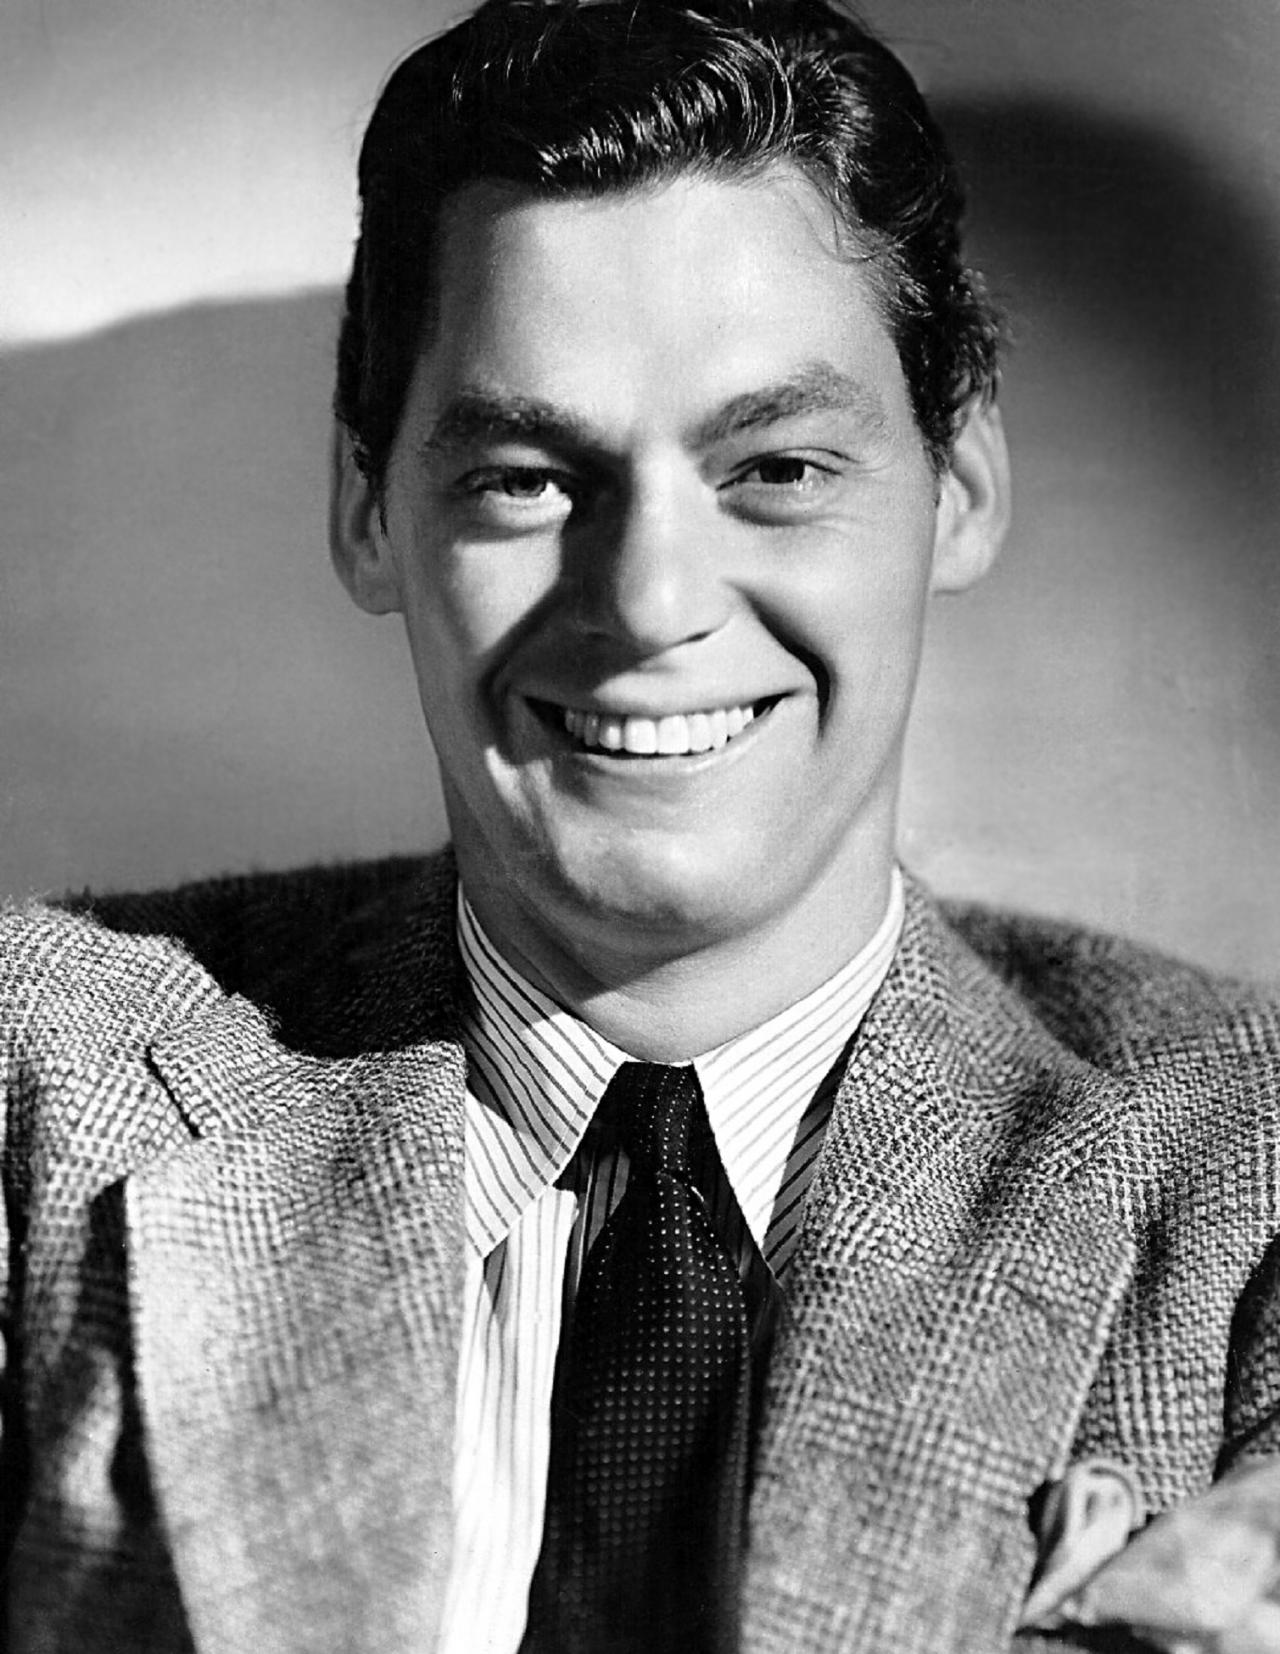 Johnny Weissmuller, television, film, famous, actor, HQ Photo